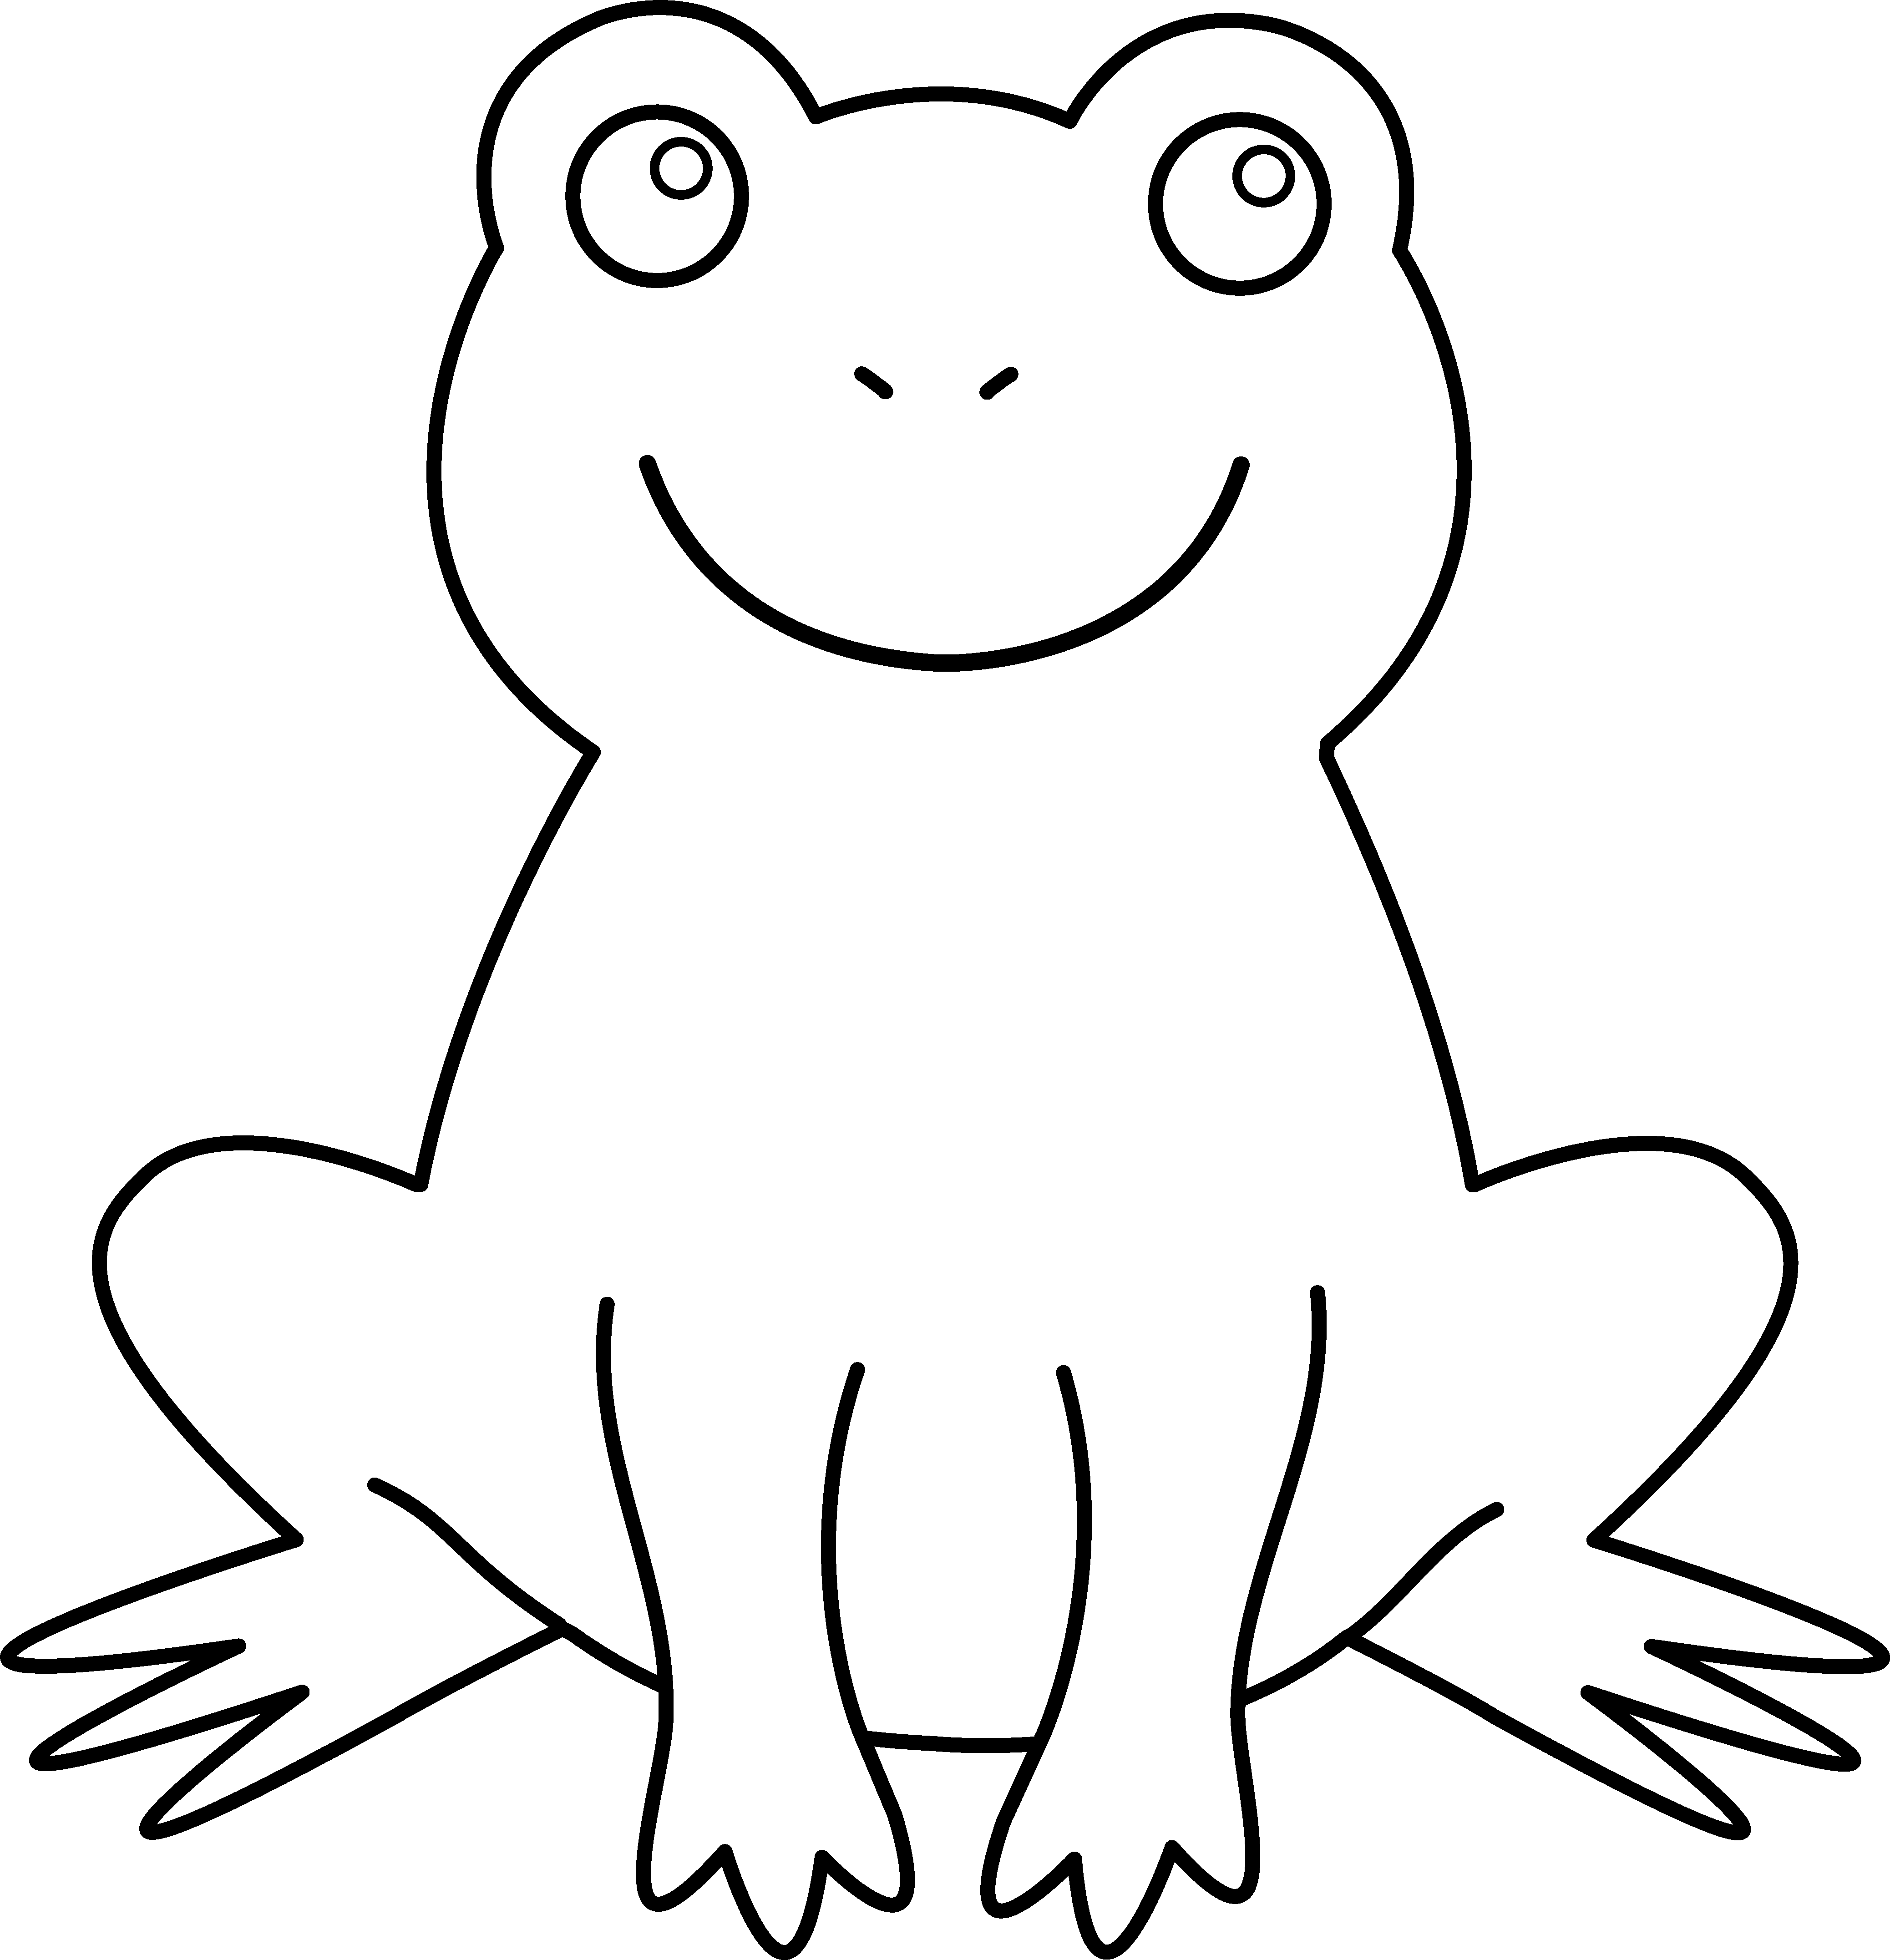 Png black and white. Outline clipart frog